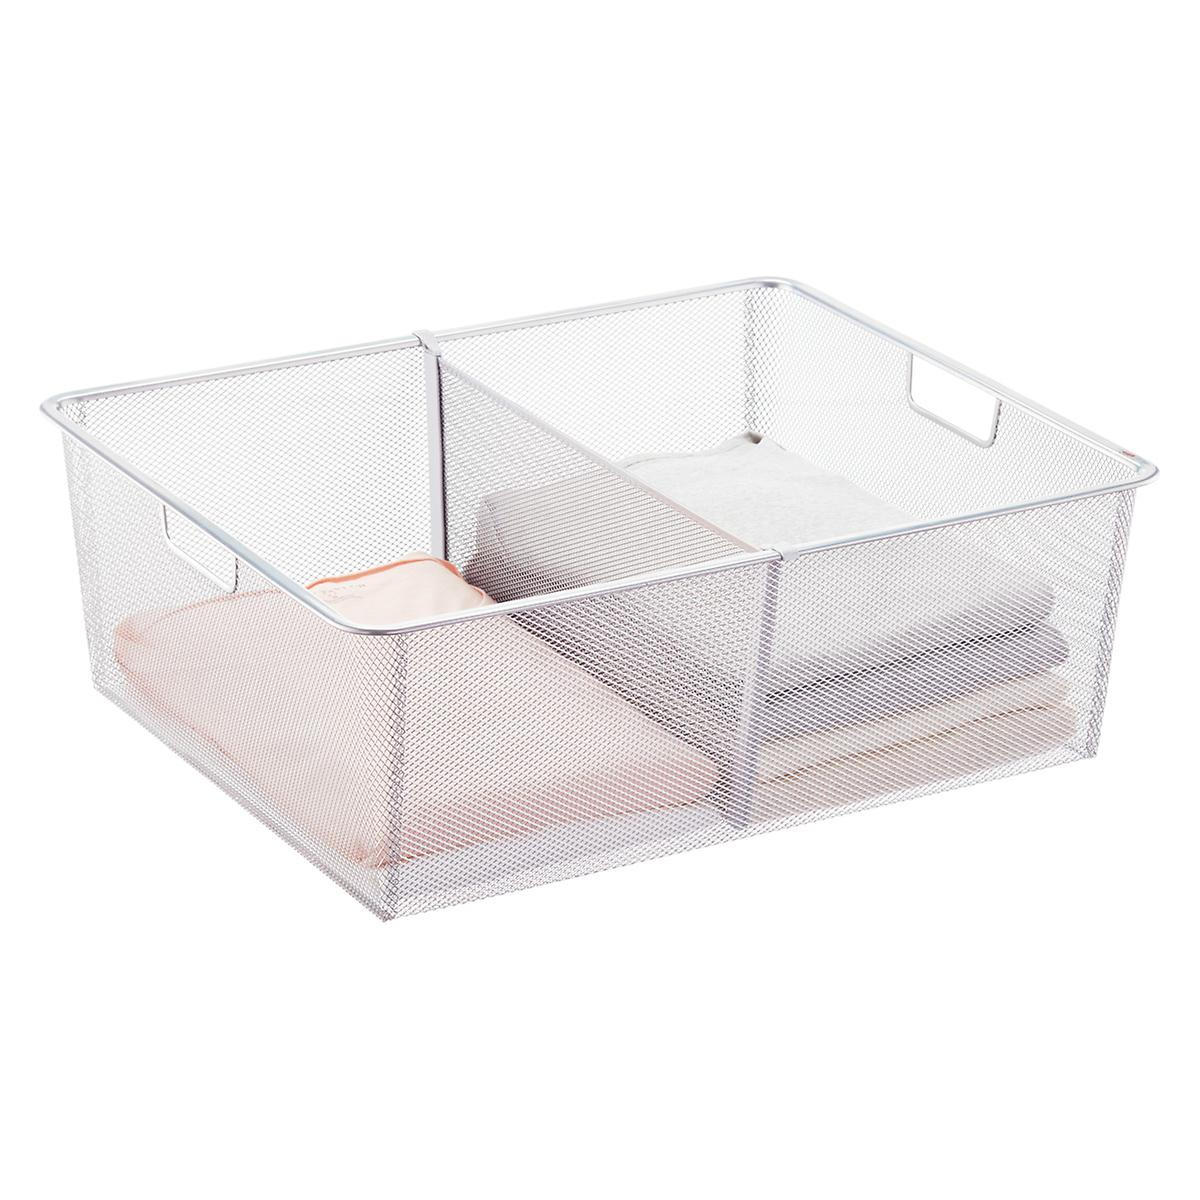 Elfa Platinum Medium Mesh Drawer Dividers